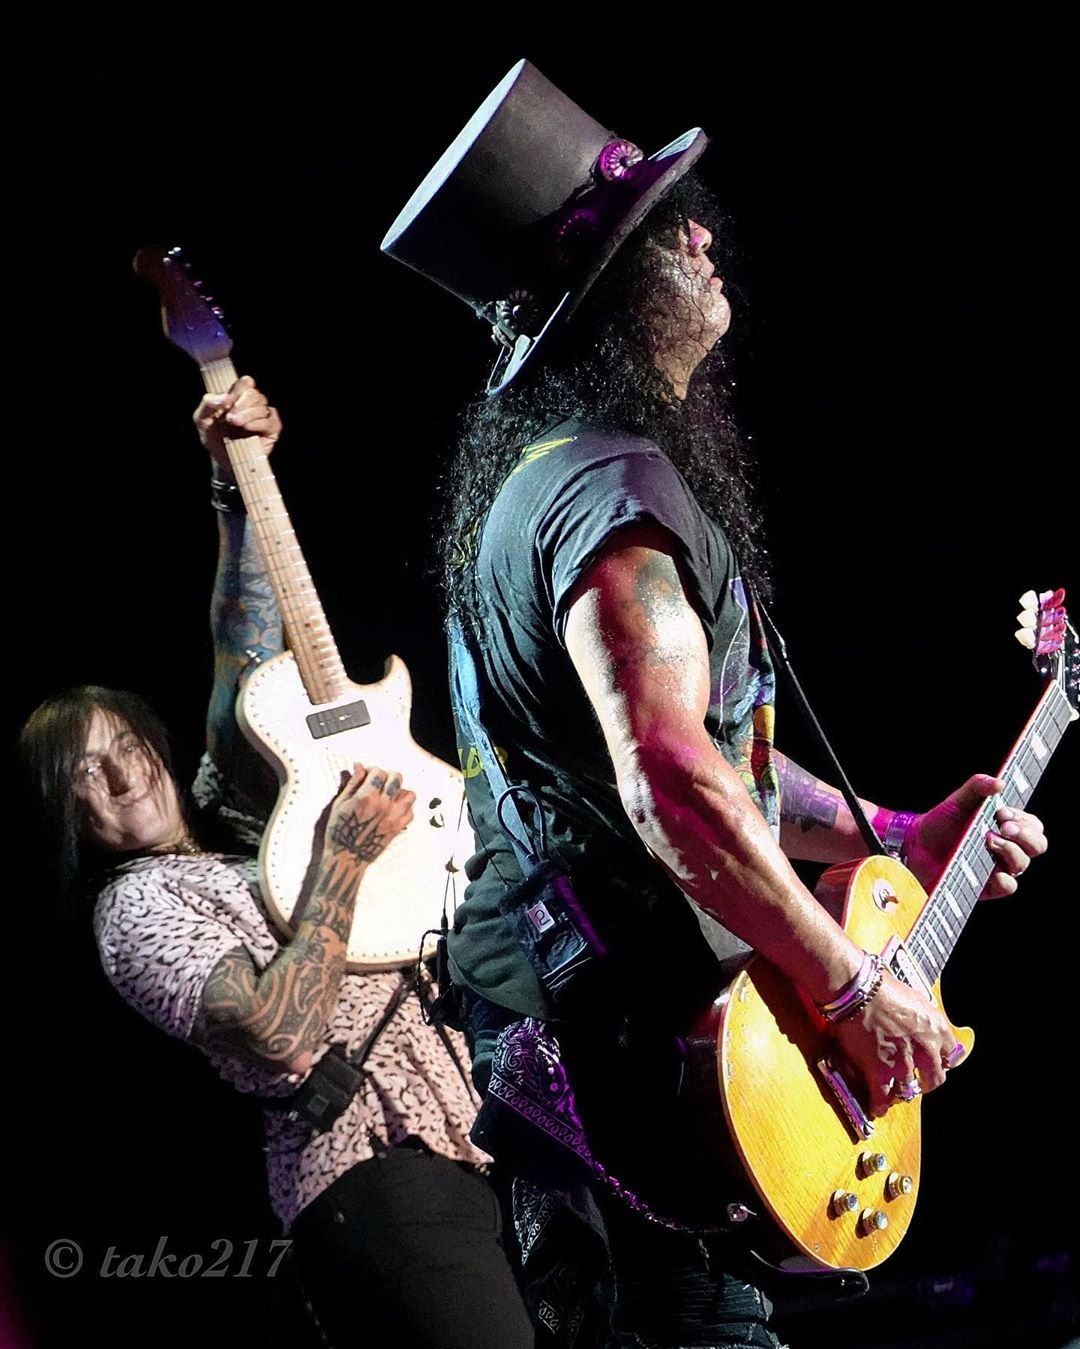 Slash france st louis usa 2019 living the dream smkc kennedy kerns gaalaas conspirators